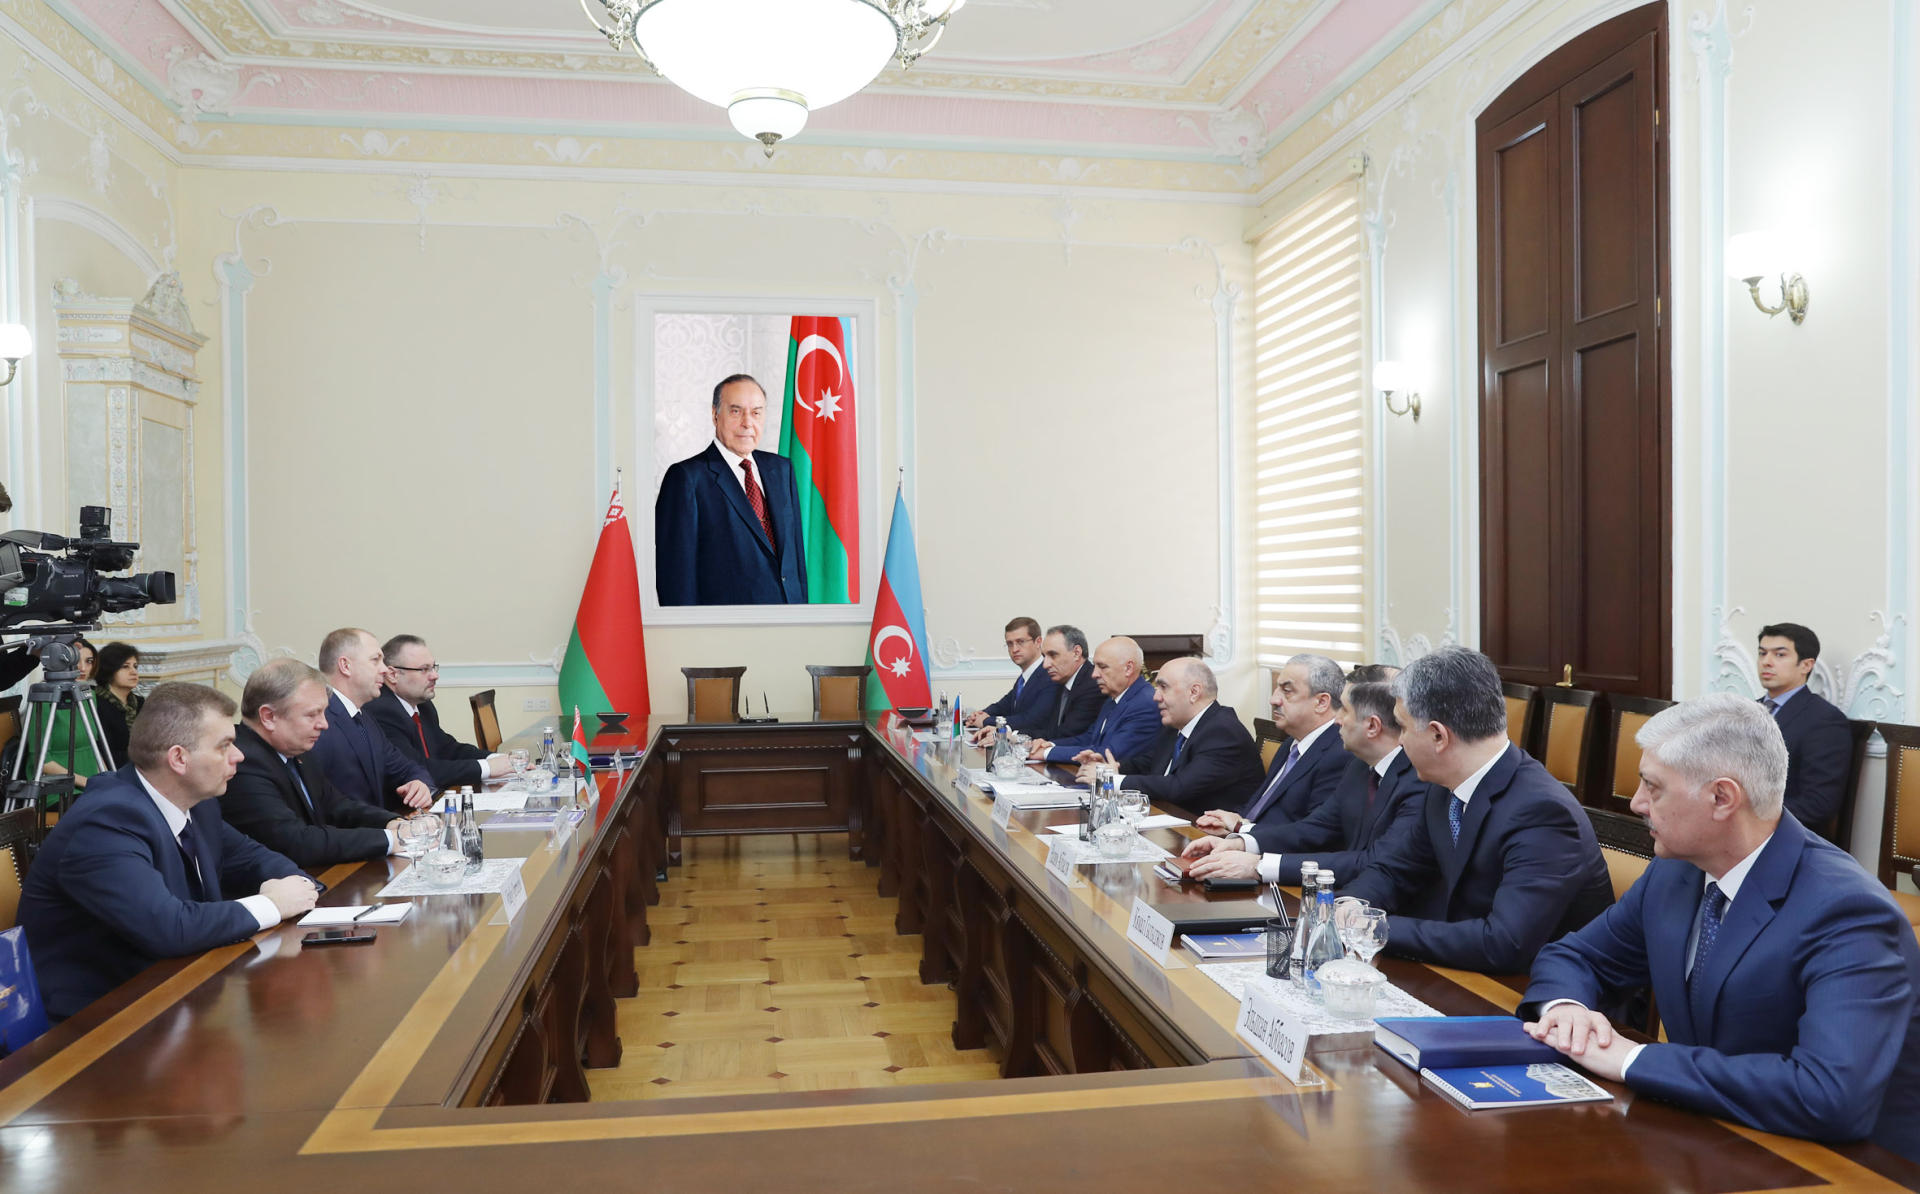 Investigation agencies of Azerbaijan, Belarus to jointly fight terrorism